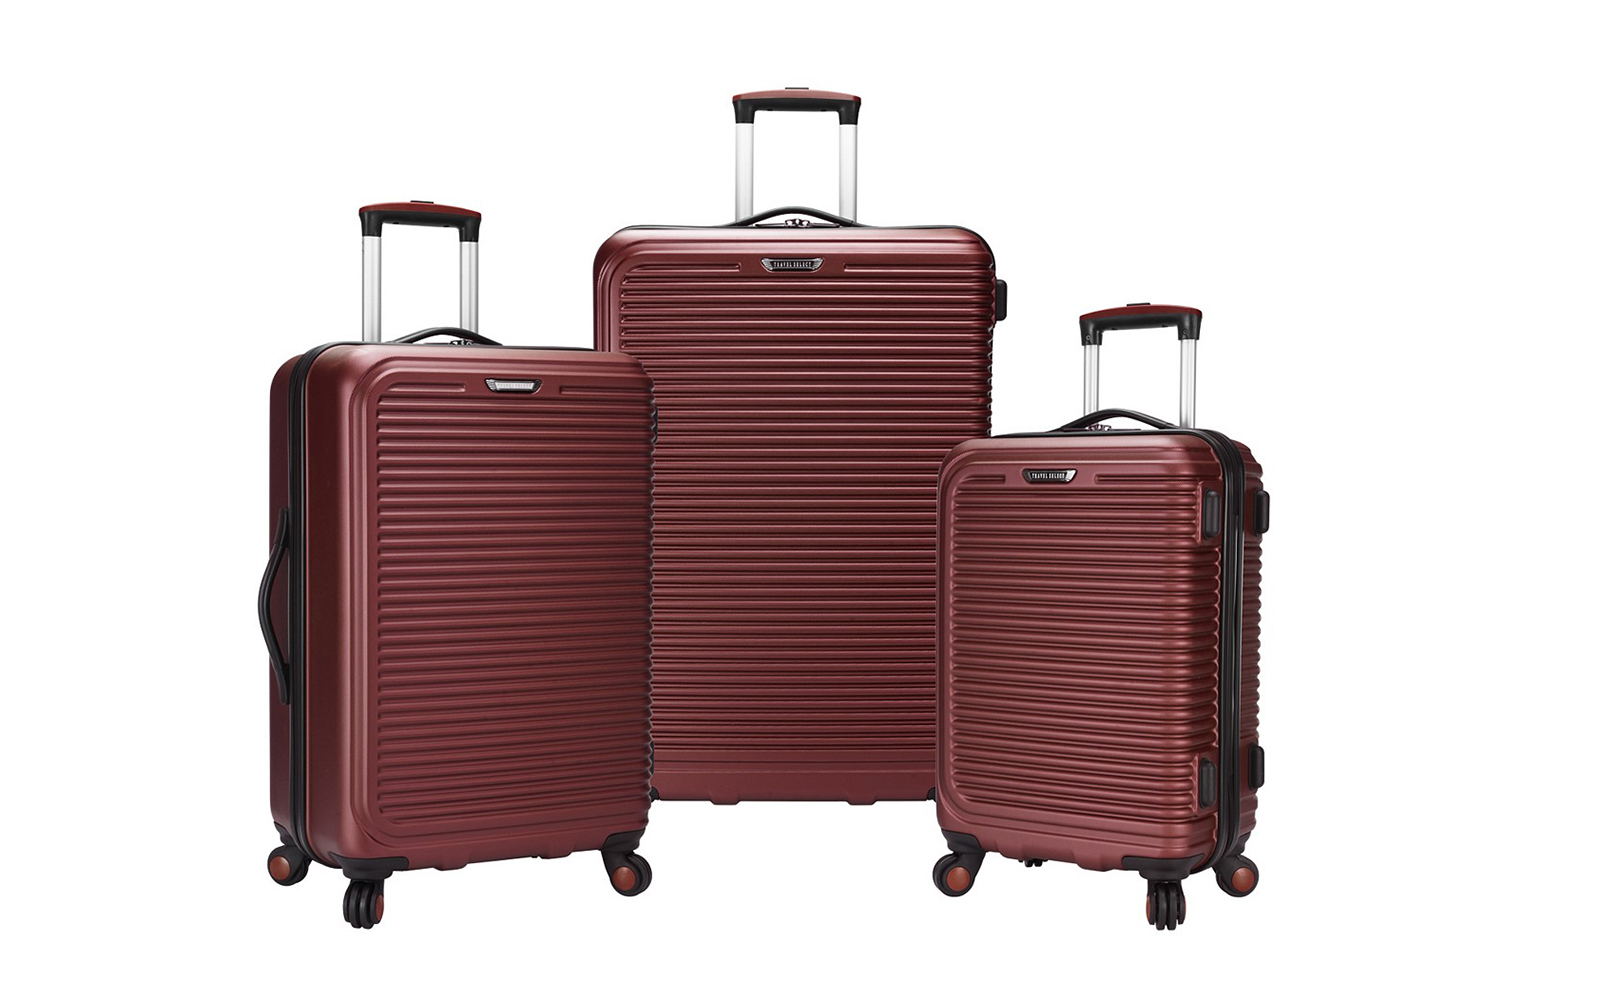 Travel Select Savannah 3-Pc. Hardside Luggage Set